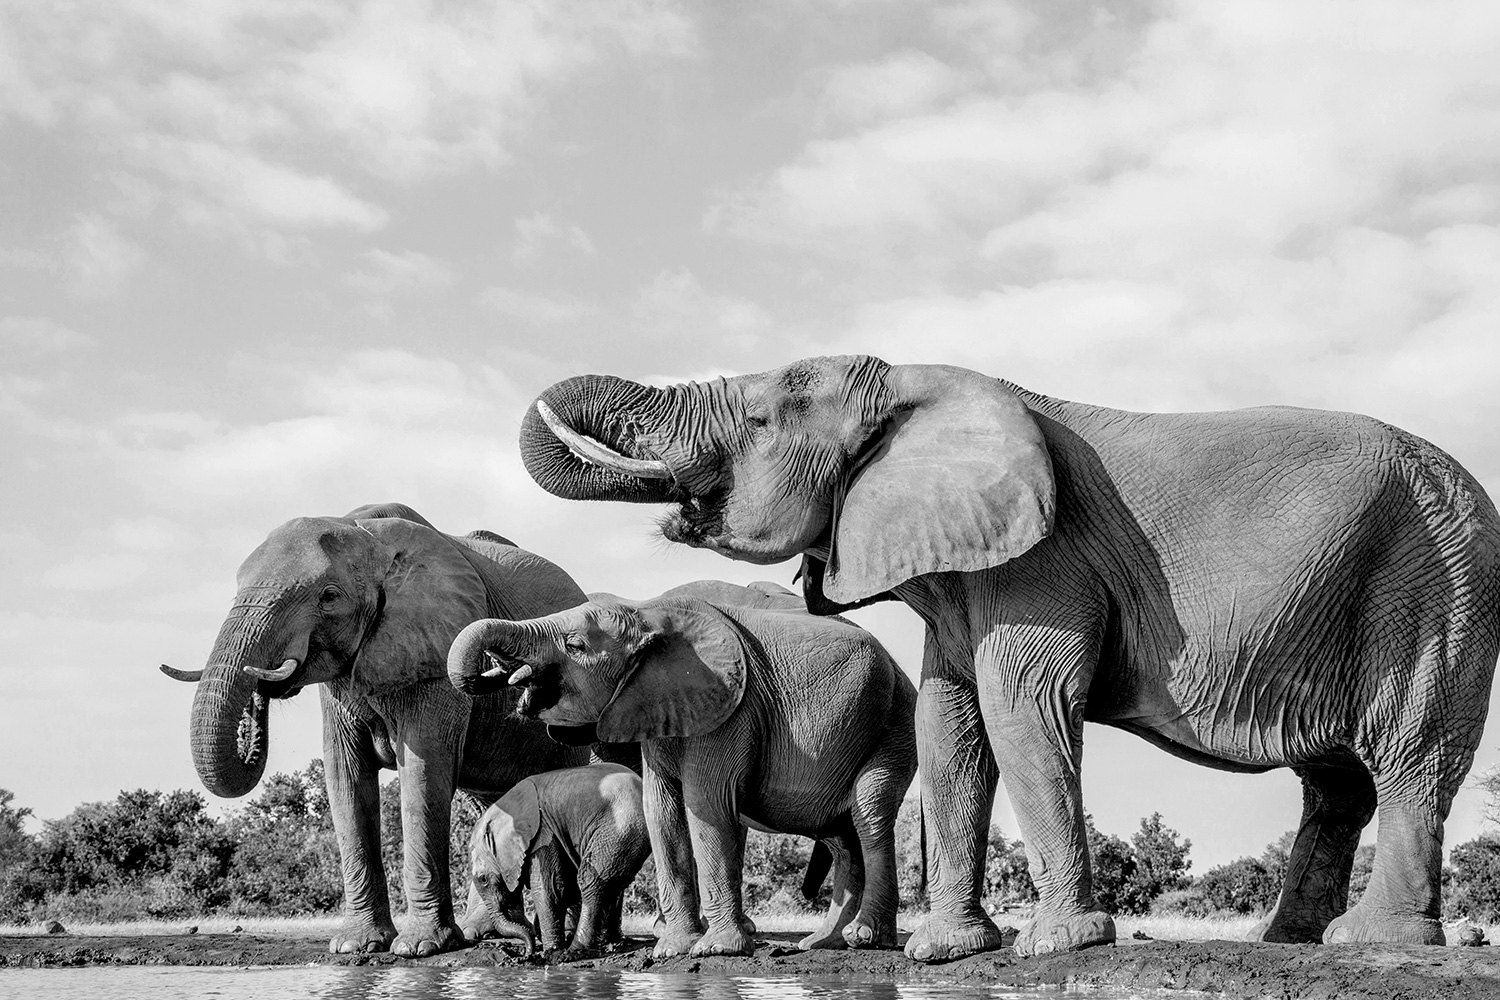 A herd of elephants in black and white. Photo by Photographers Bob and Dawn Davis